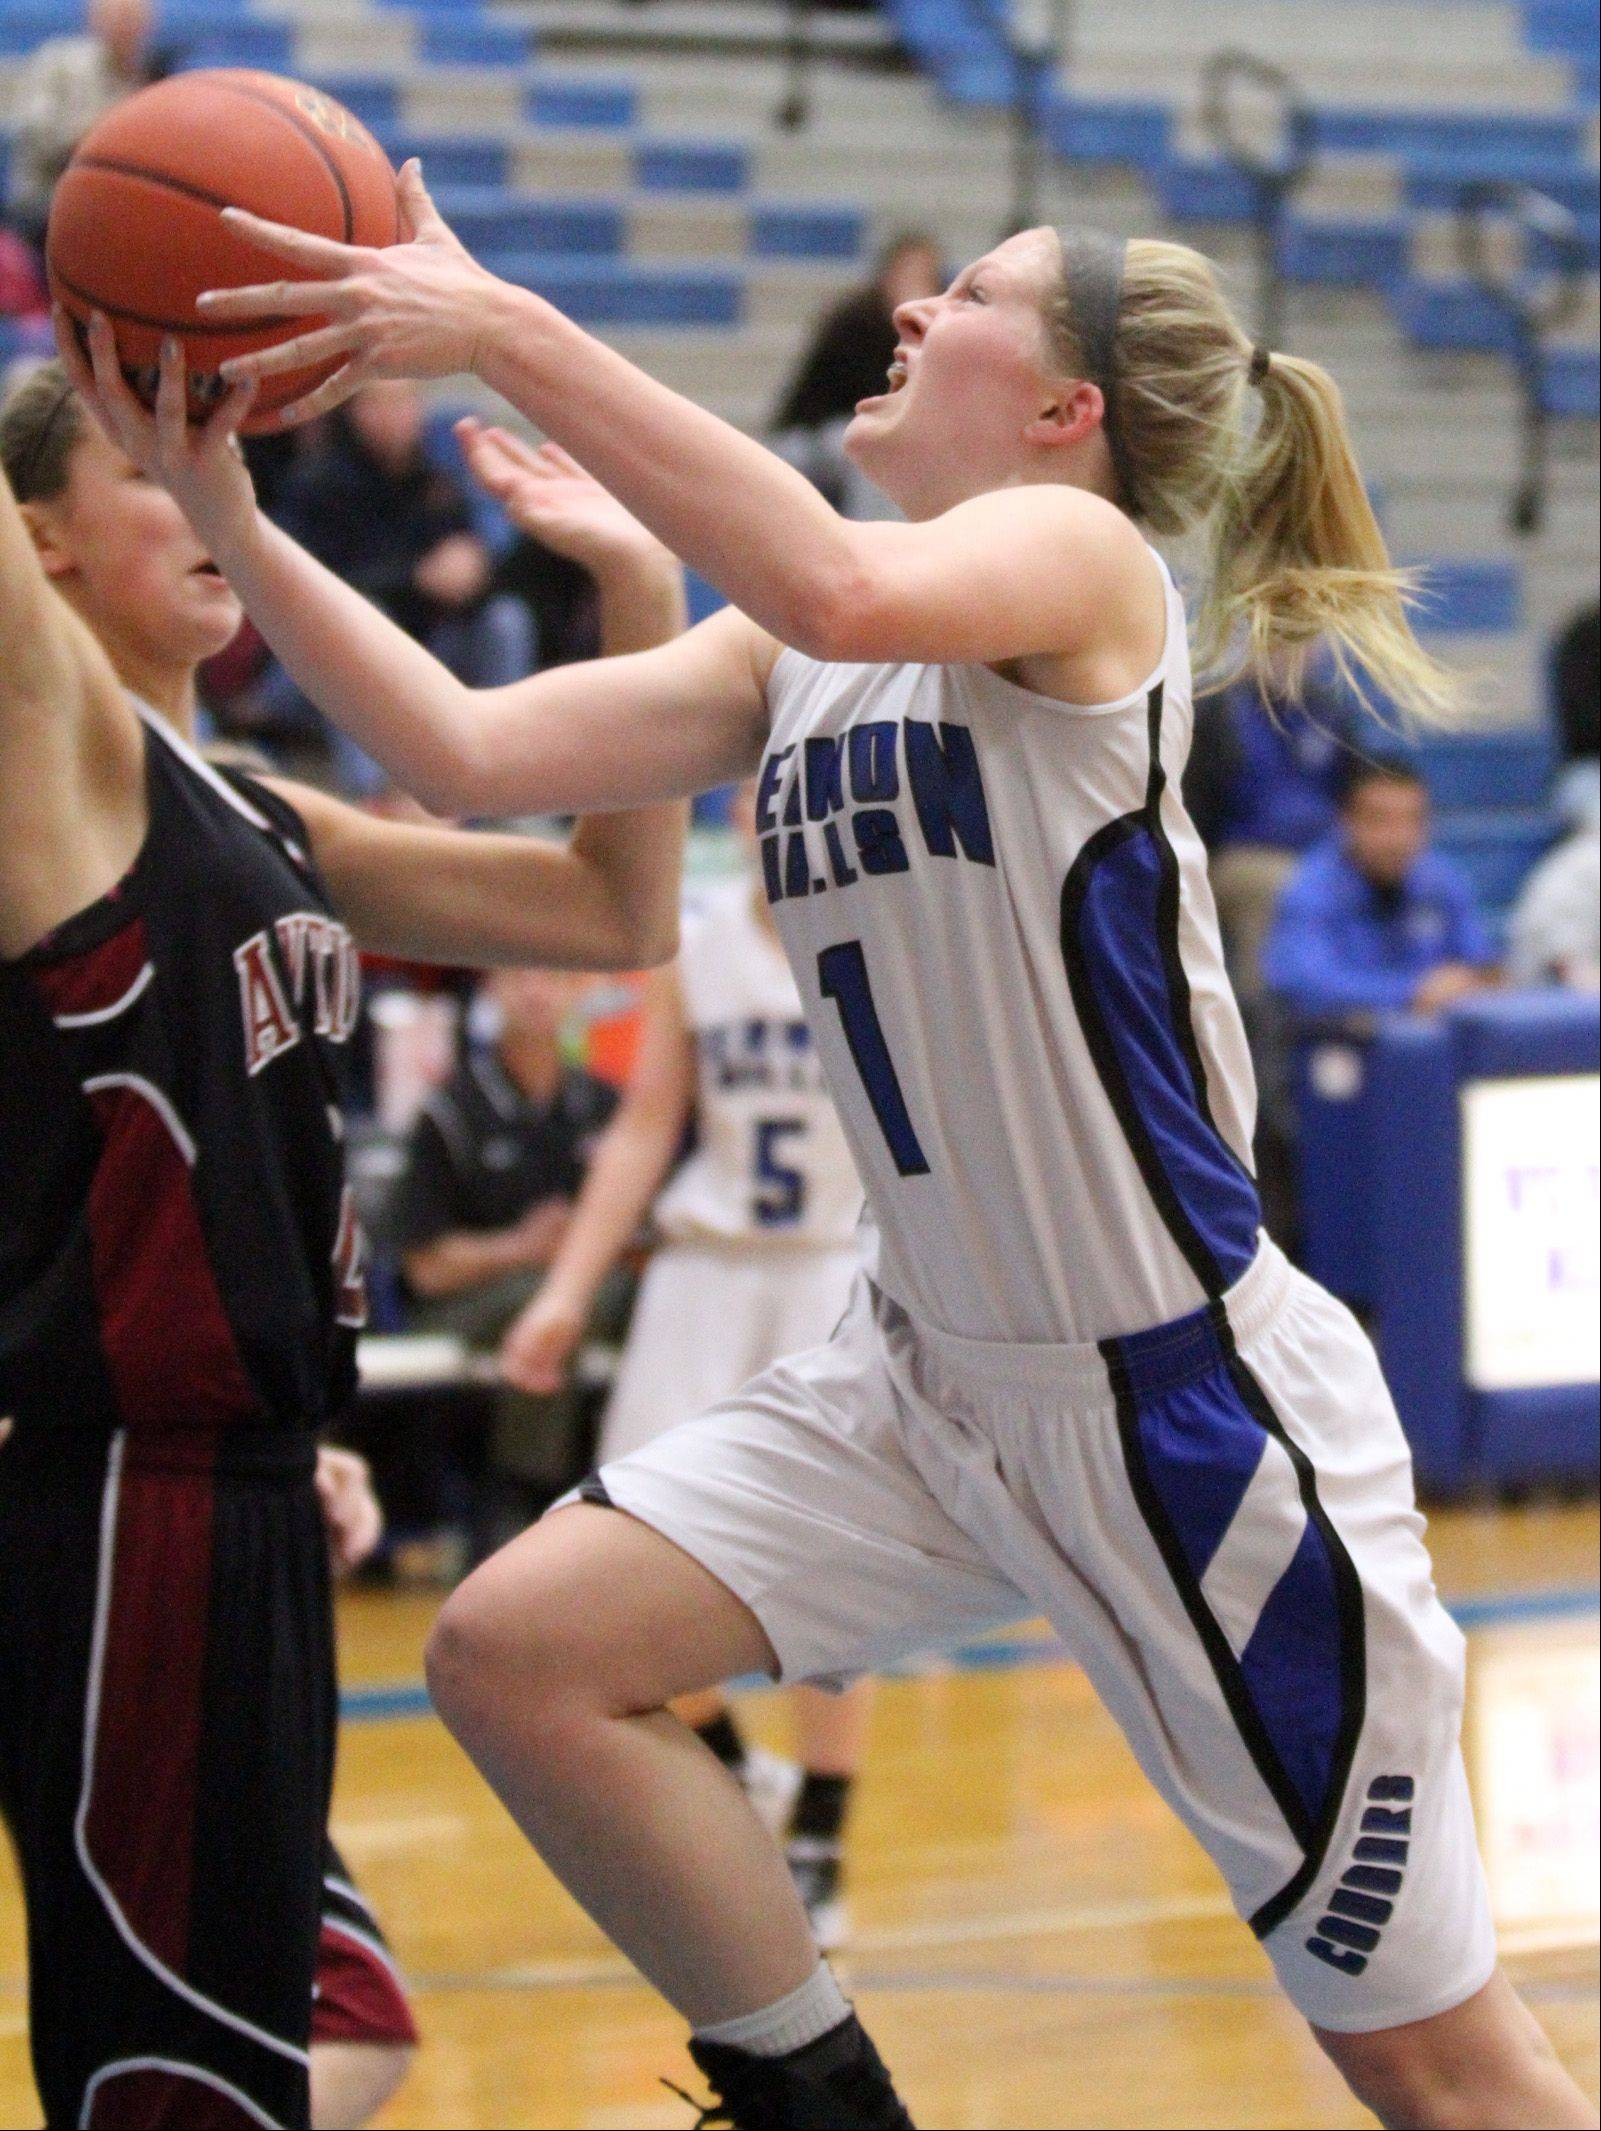 Vernon Hills' Sydney Smith drives in for a layup against Antioch on Saturday at Vernon Hills.